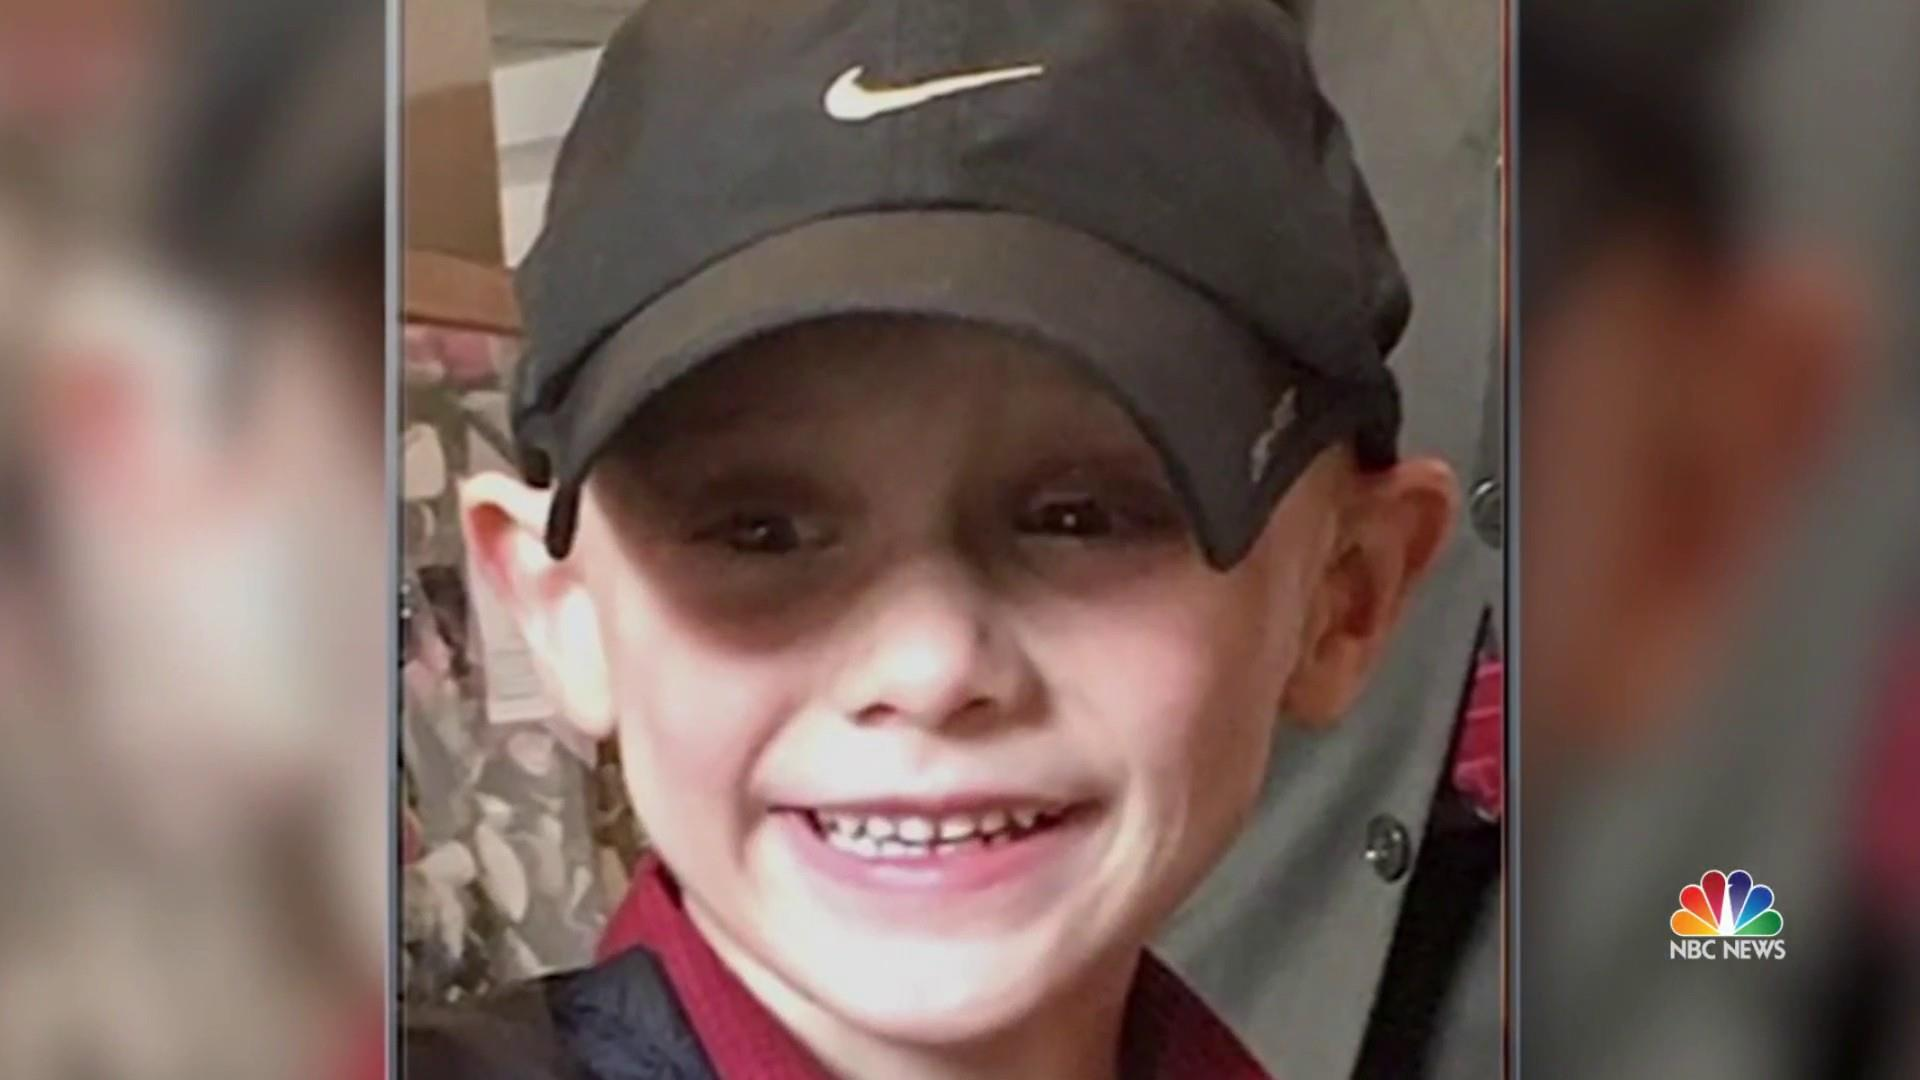 Mystery deepens in search for missing 5-year-old boy